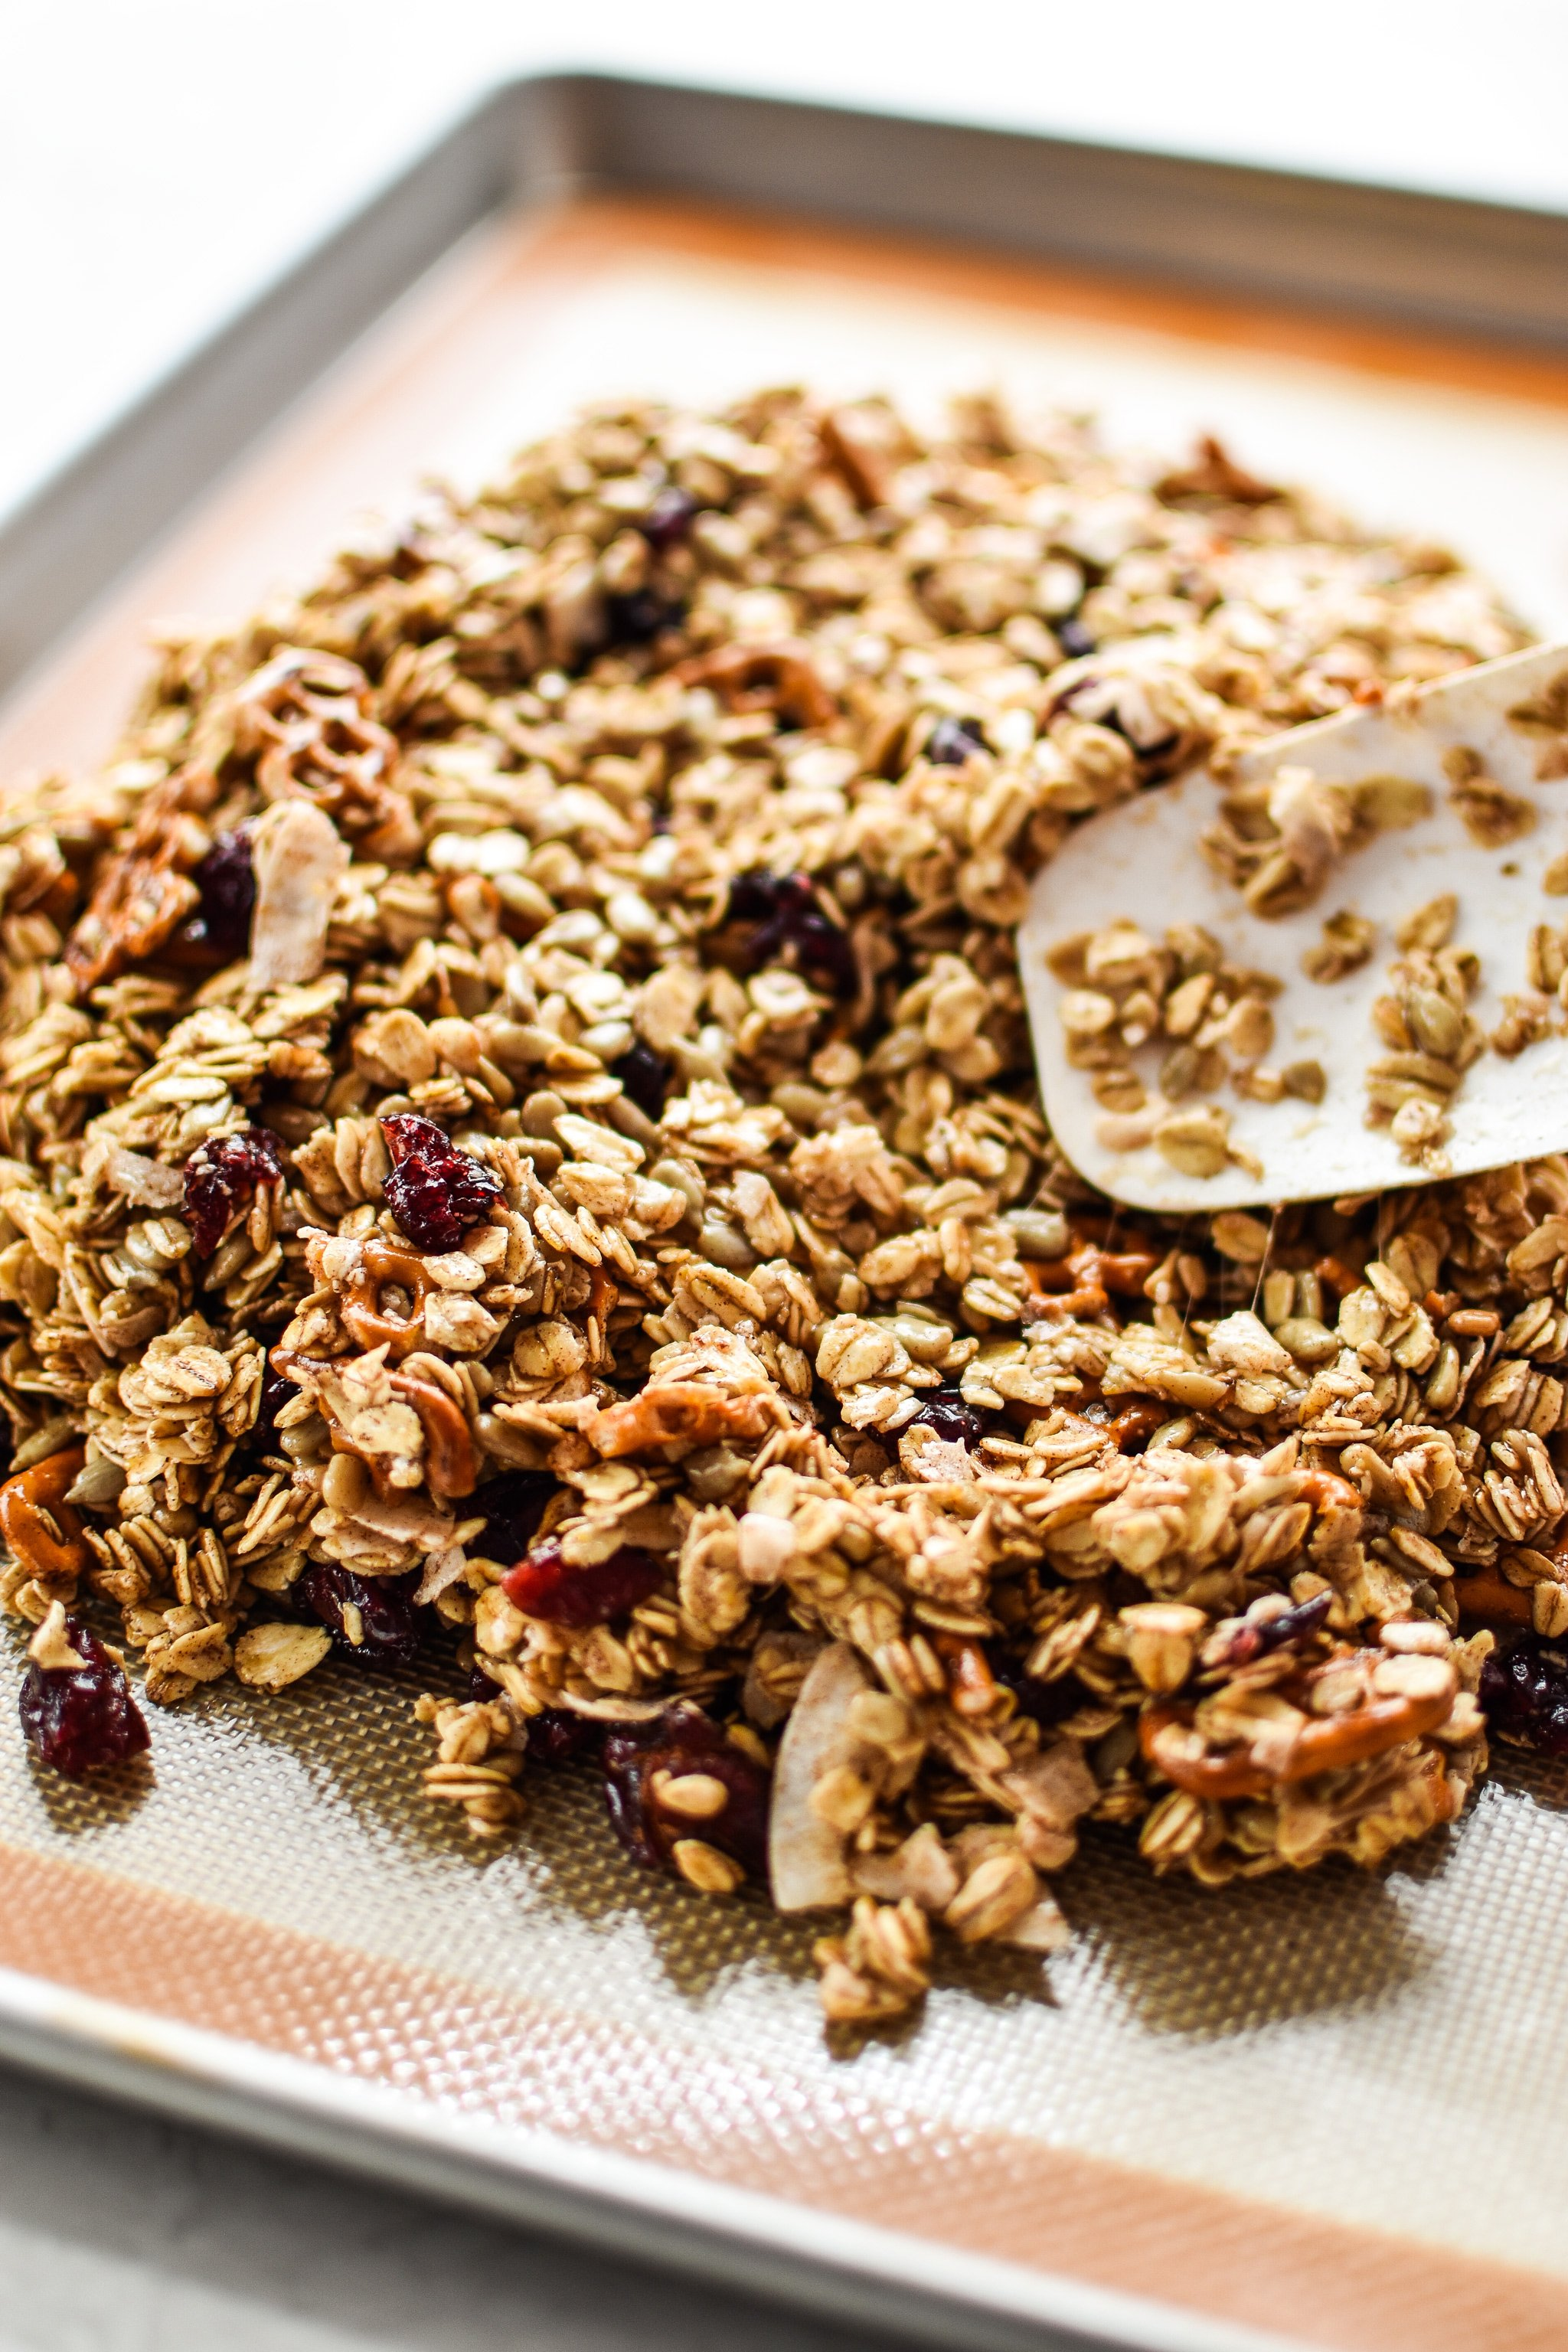 Using a spatula to spread the granola mixture on the sheet tray.